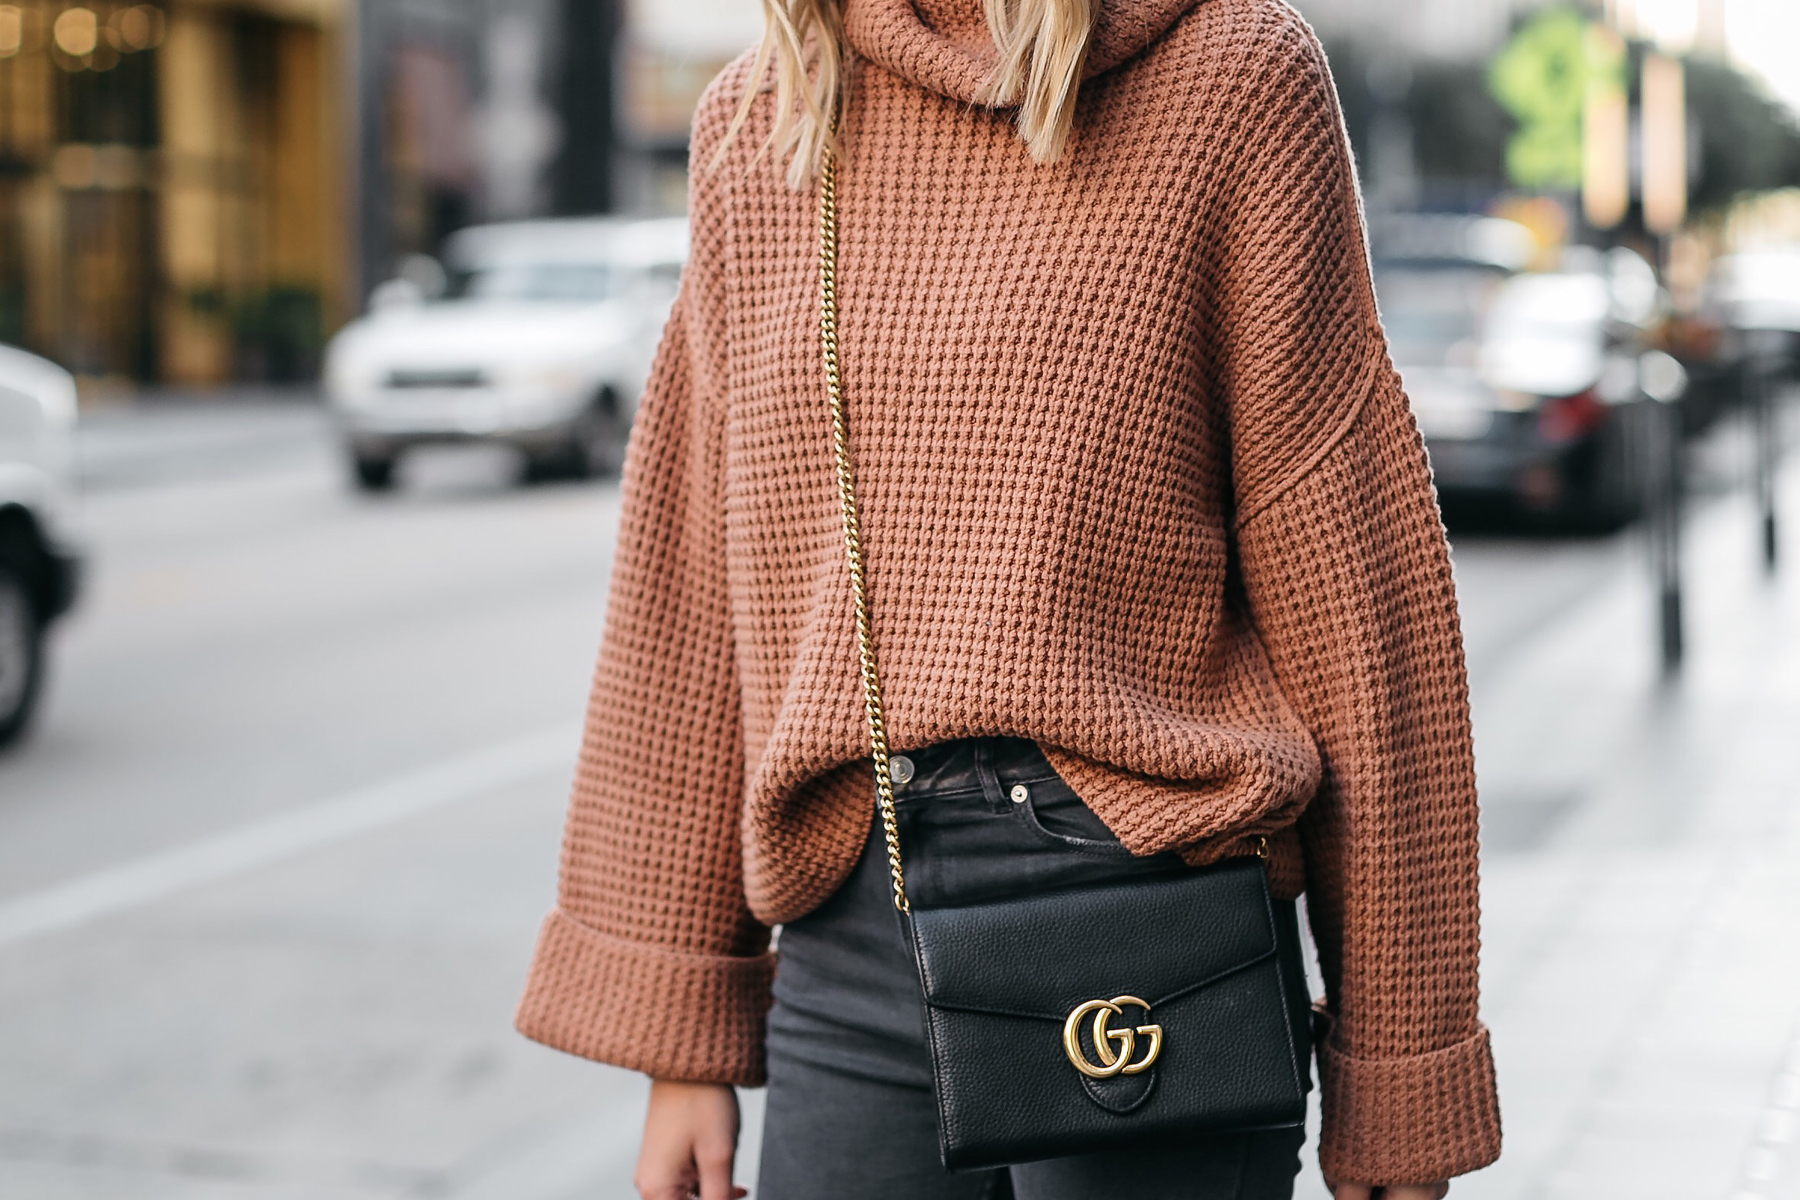 Jackson-Oversized-Sweater-Free-People-Park-City-Pullover-Tan-Sweater-Gucci-Marmont-Handbag